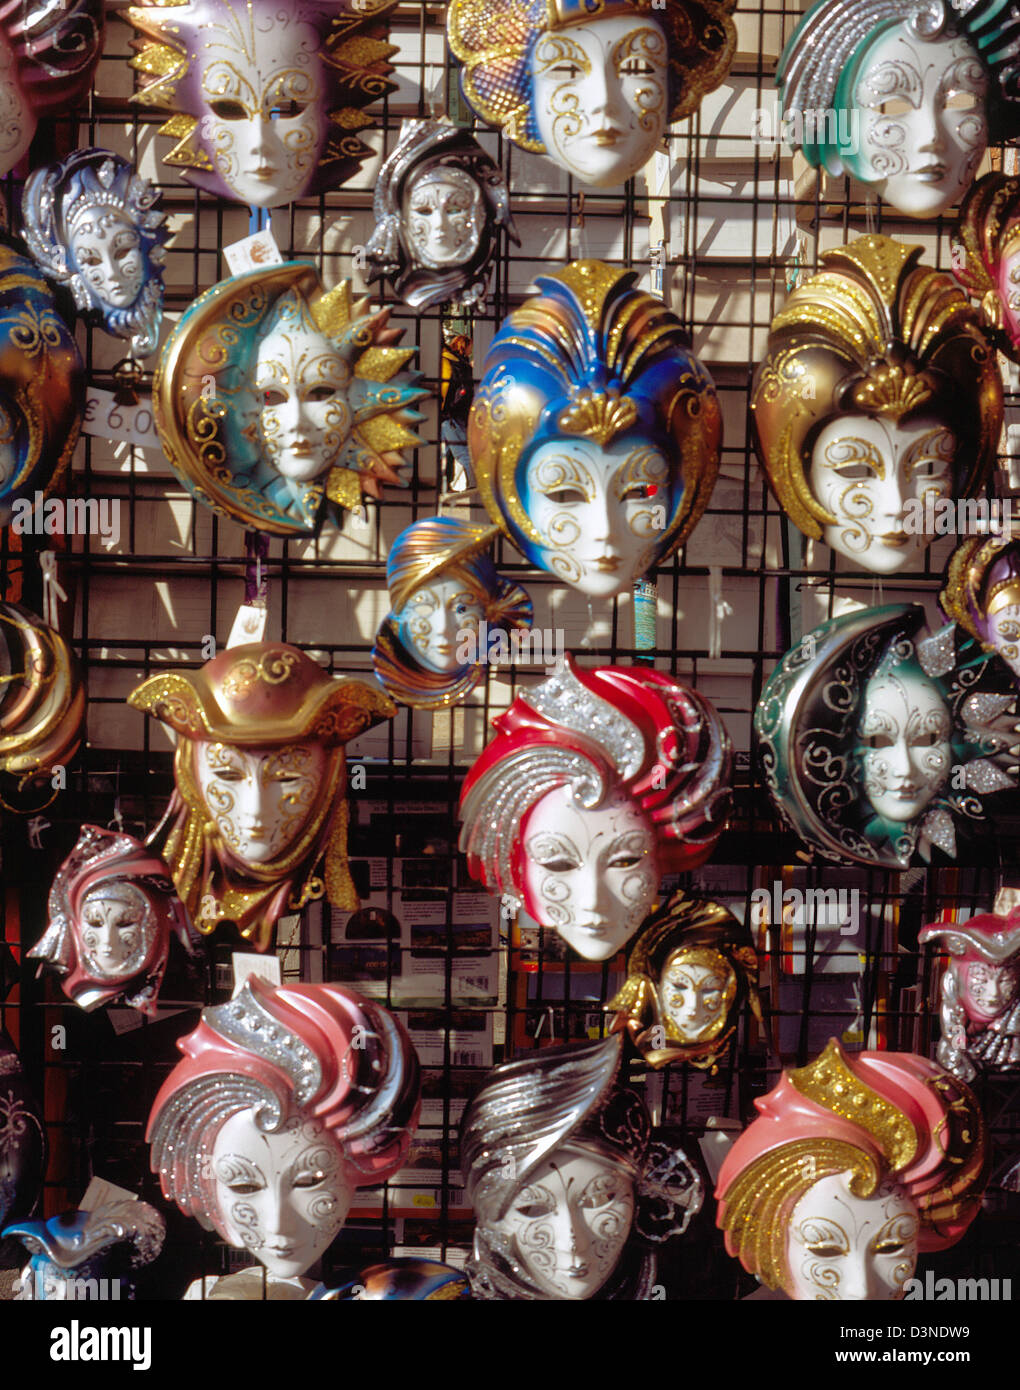 Typical Venetian carnival masks are on sale in Venice, Italy, February 2005. Photo: Willy Matheisl Stock Photo